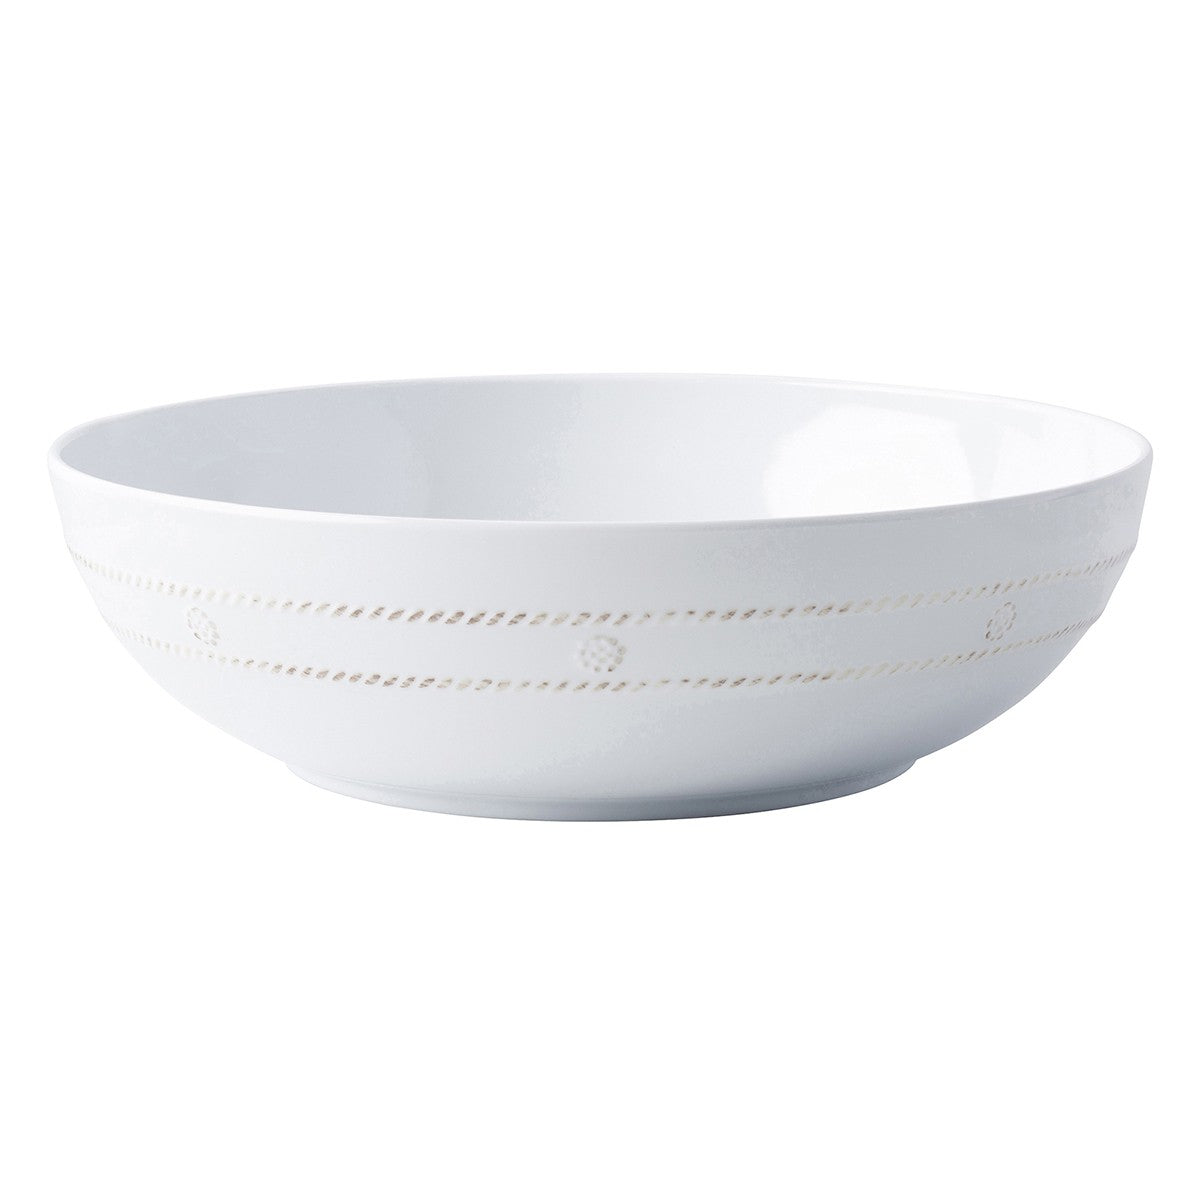 "Juliska - Berry & Thread Melamine Whitewash 12"" Bowl"